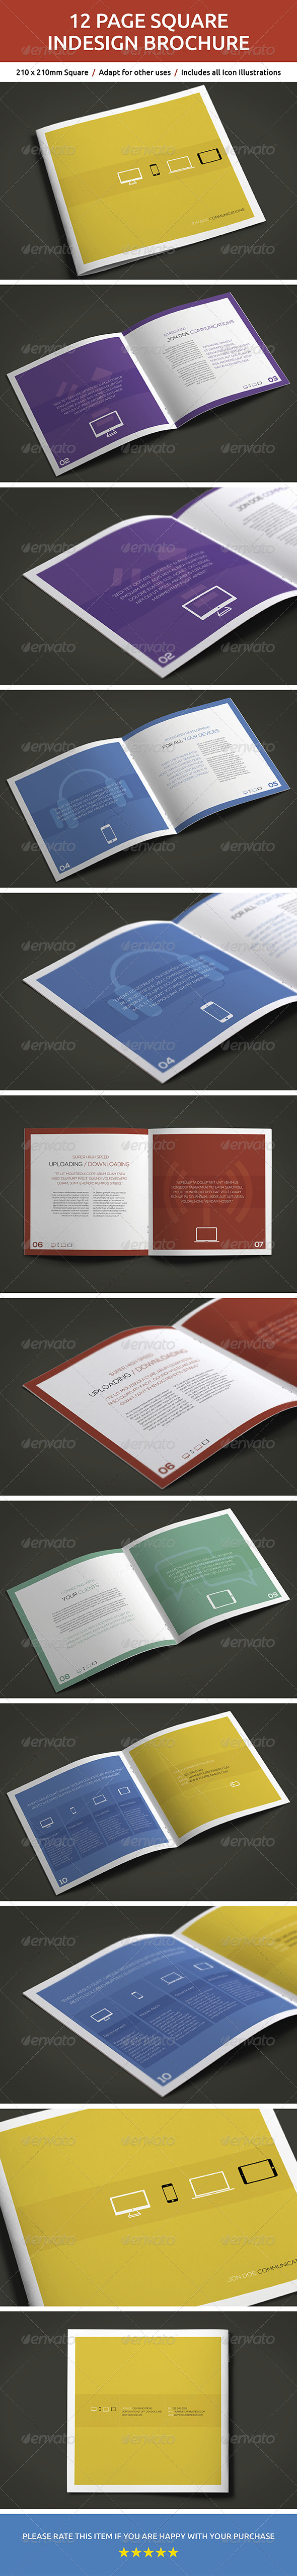 GraphicRiver 12 Page Square InDesign Brochure 6097029